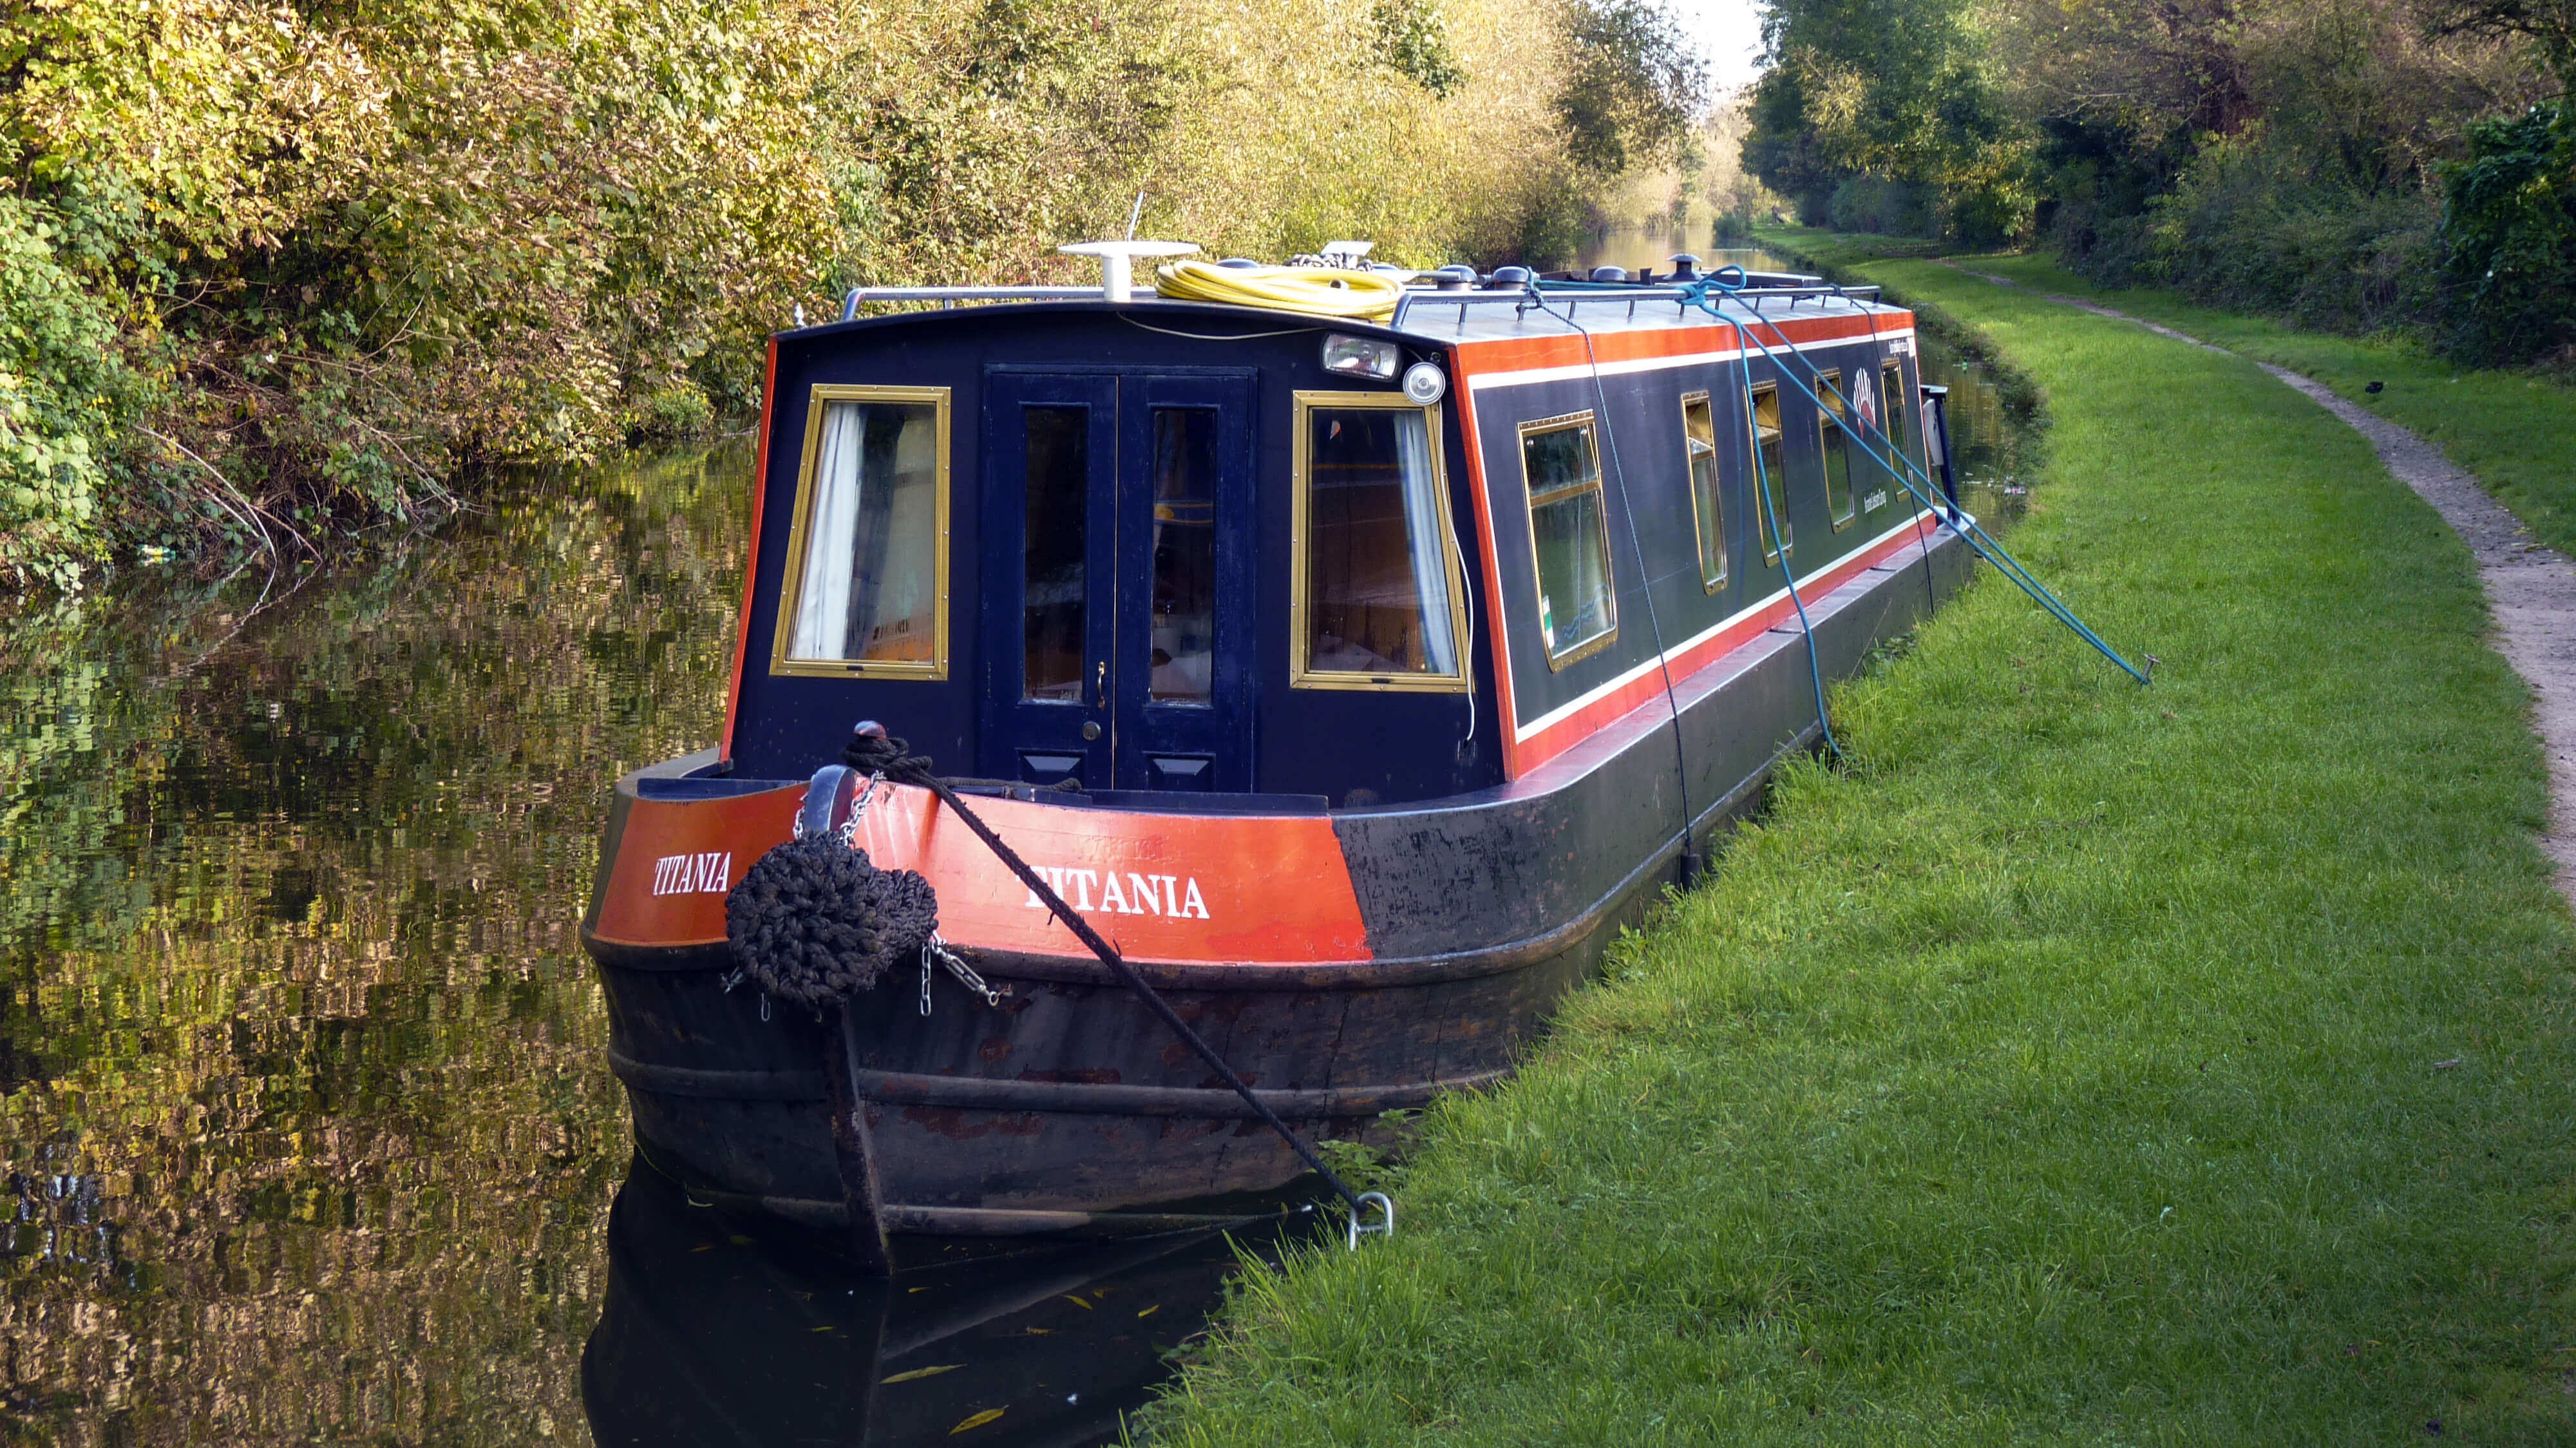 narrowboat-image.jpg